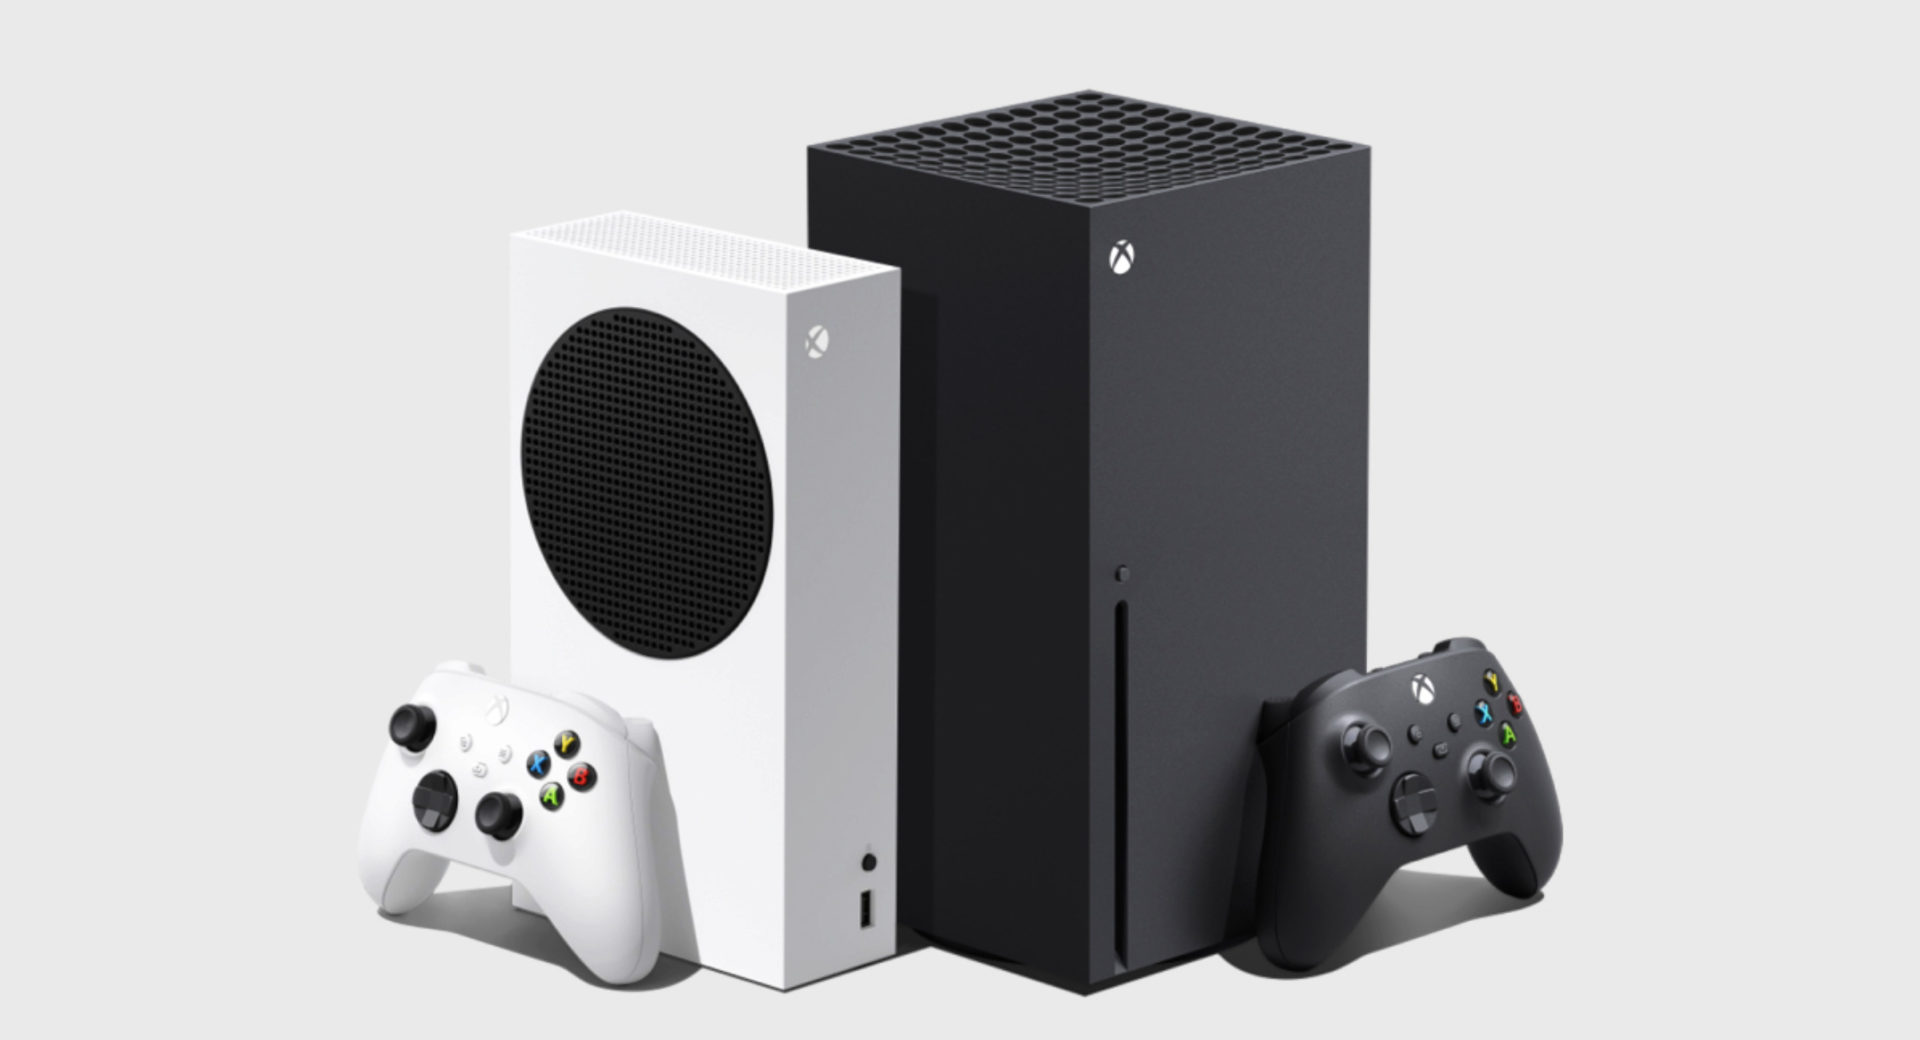 microsoft xbox series x and series s consoles